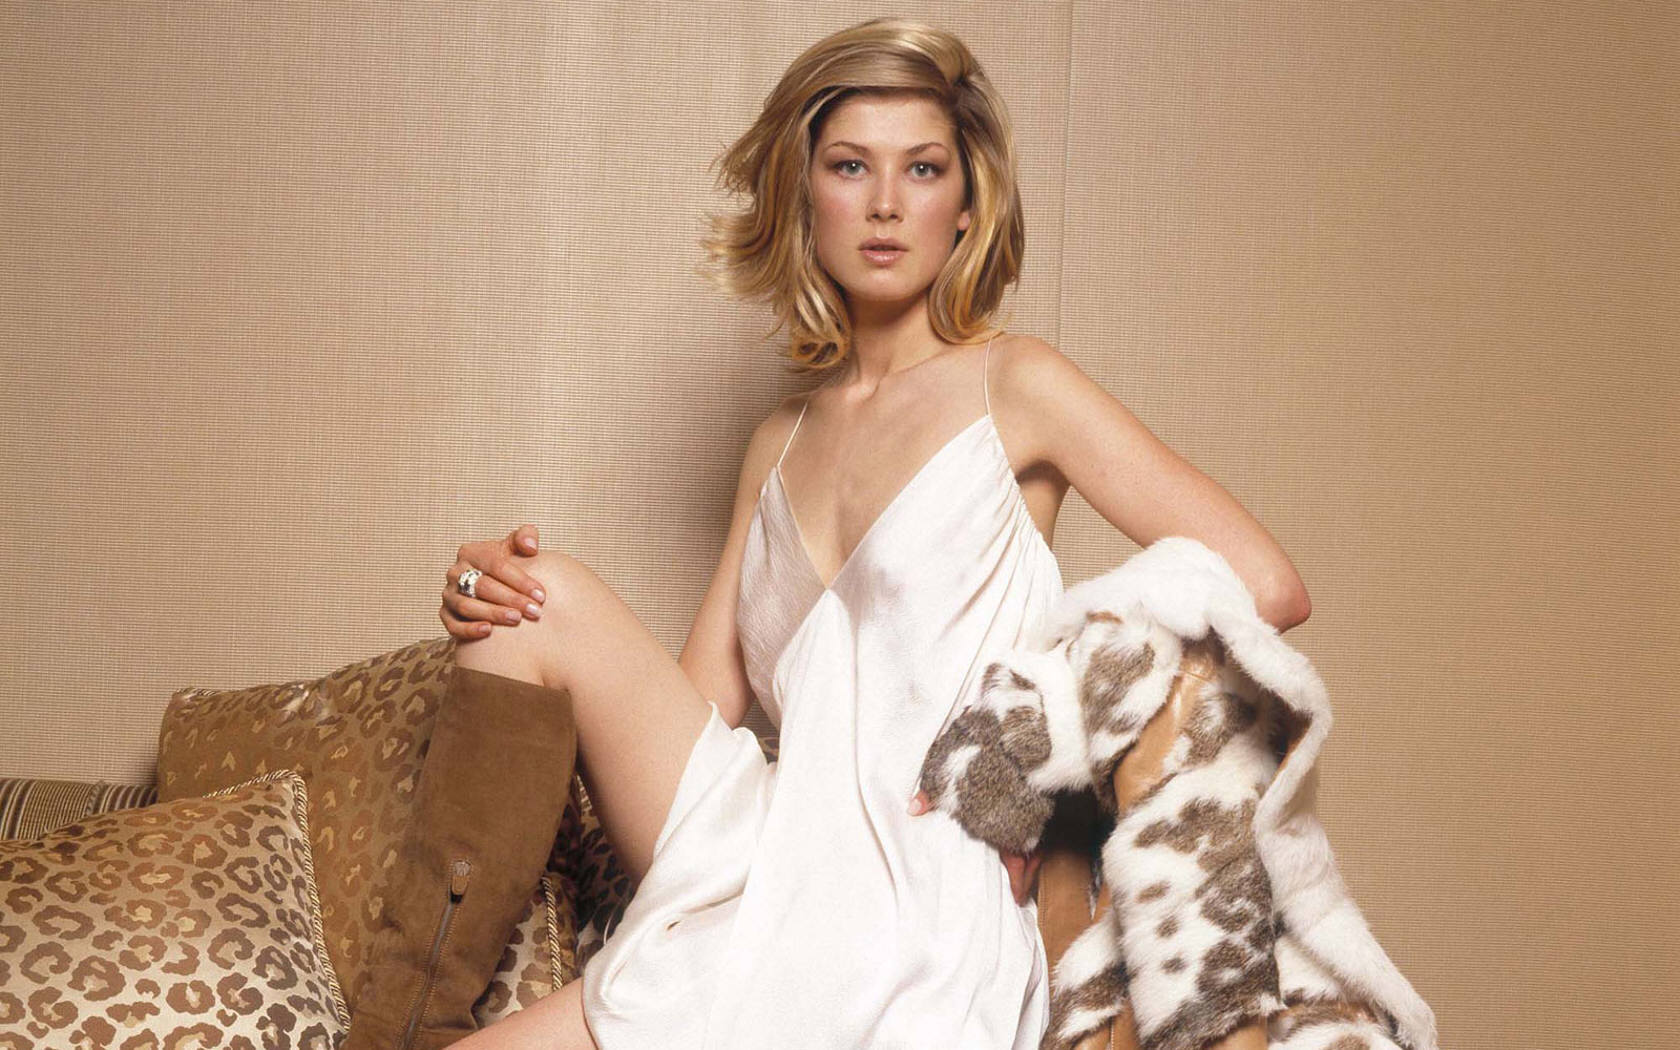 1680x1050 - Rosamund Pike Wallpapers 8